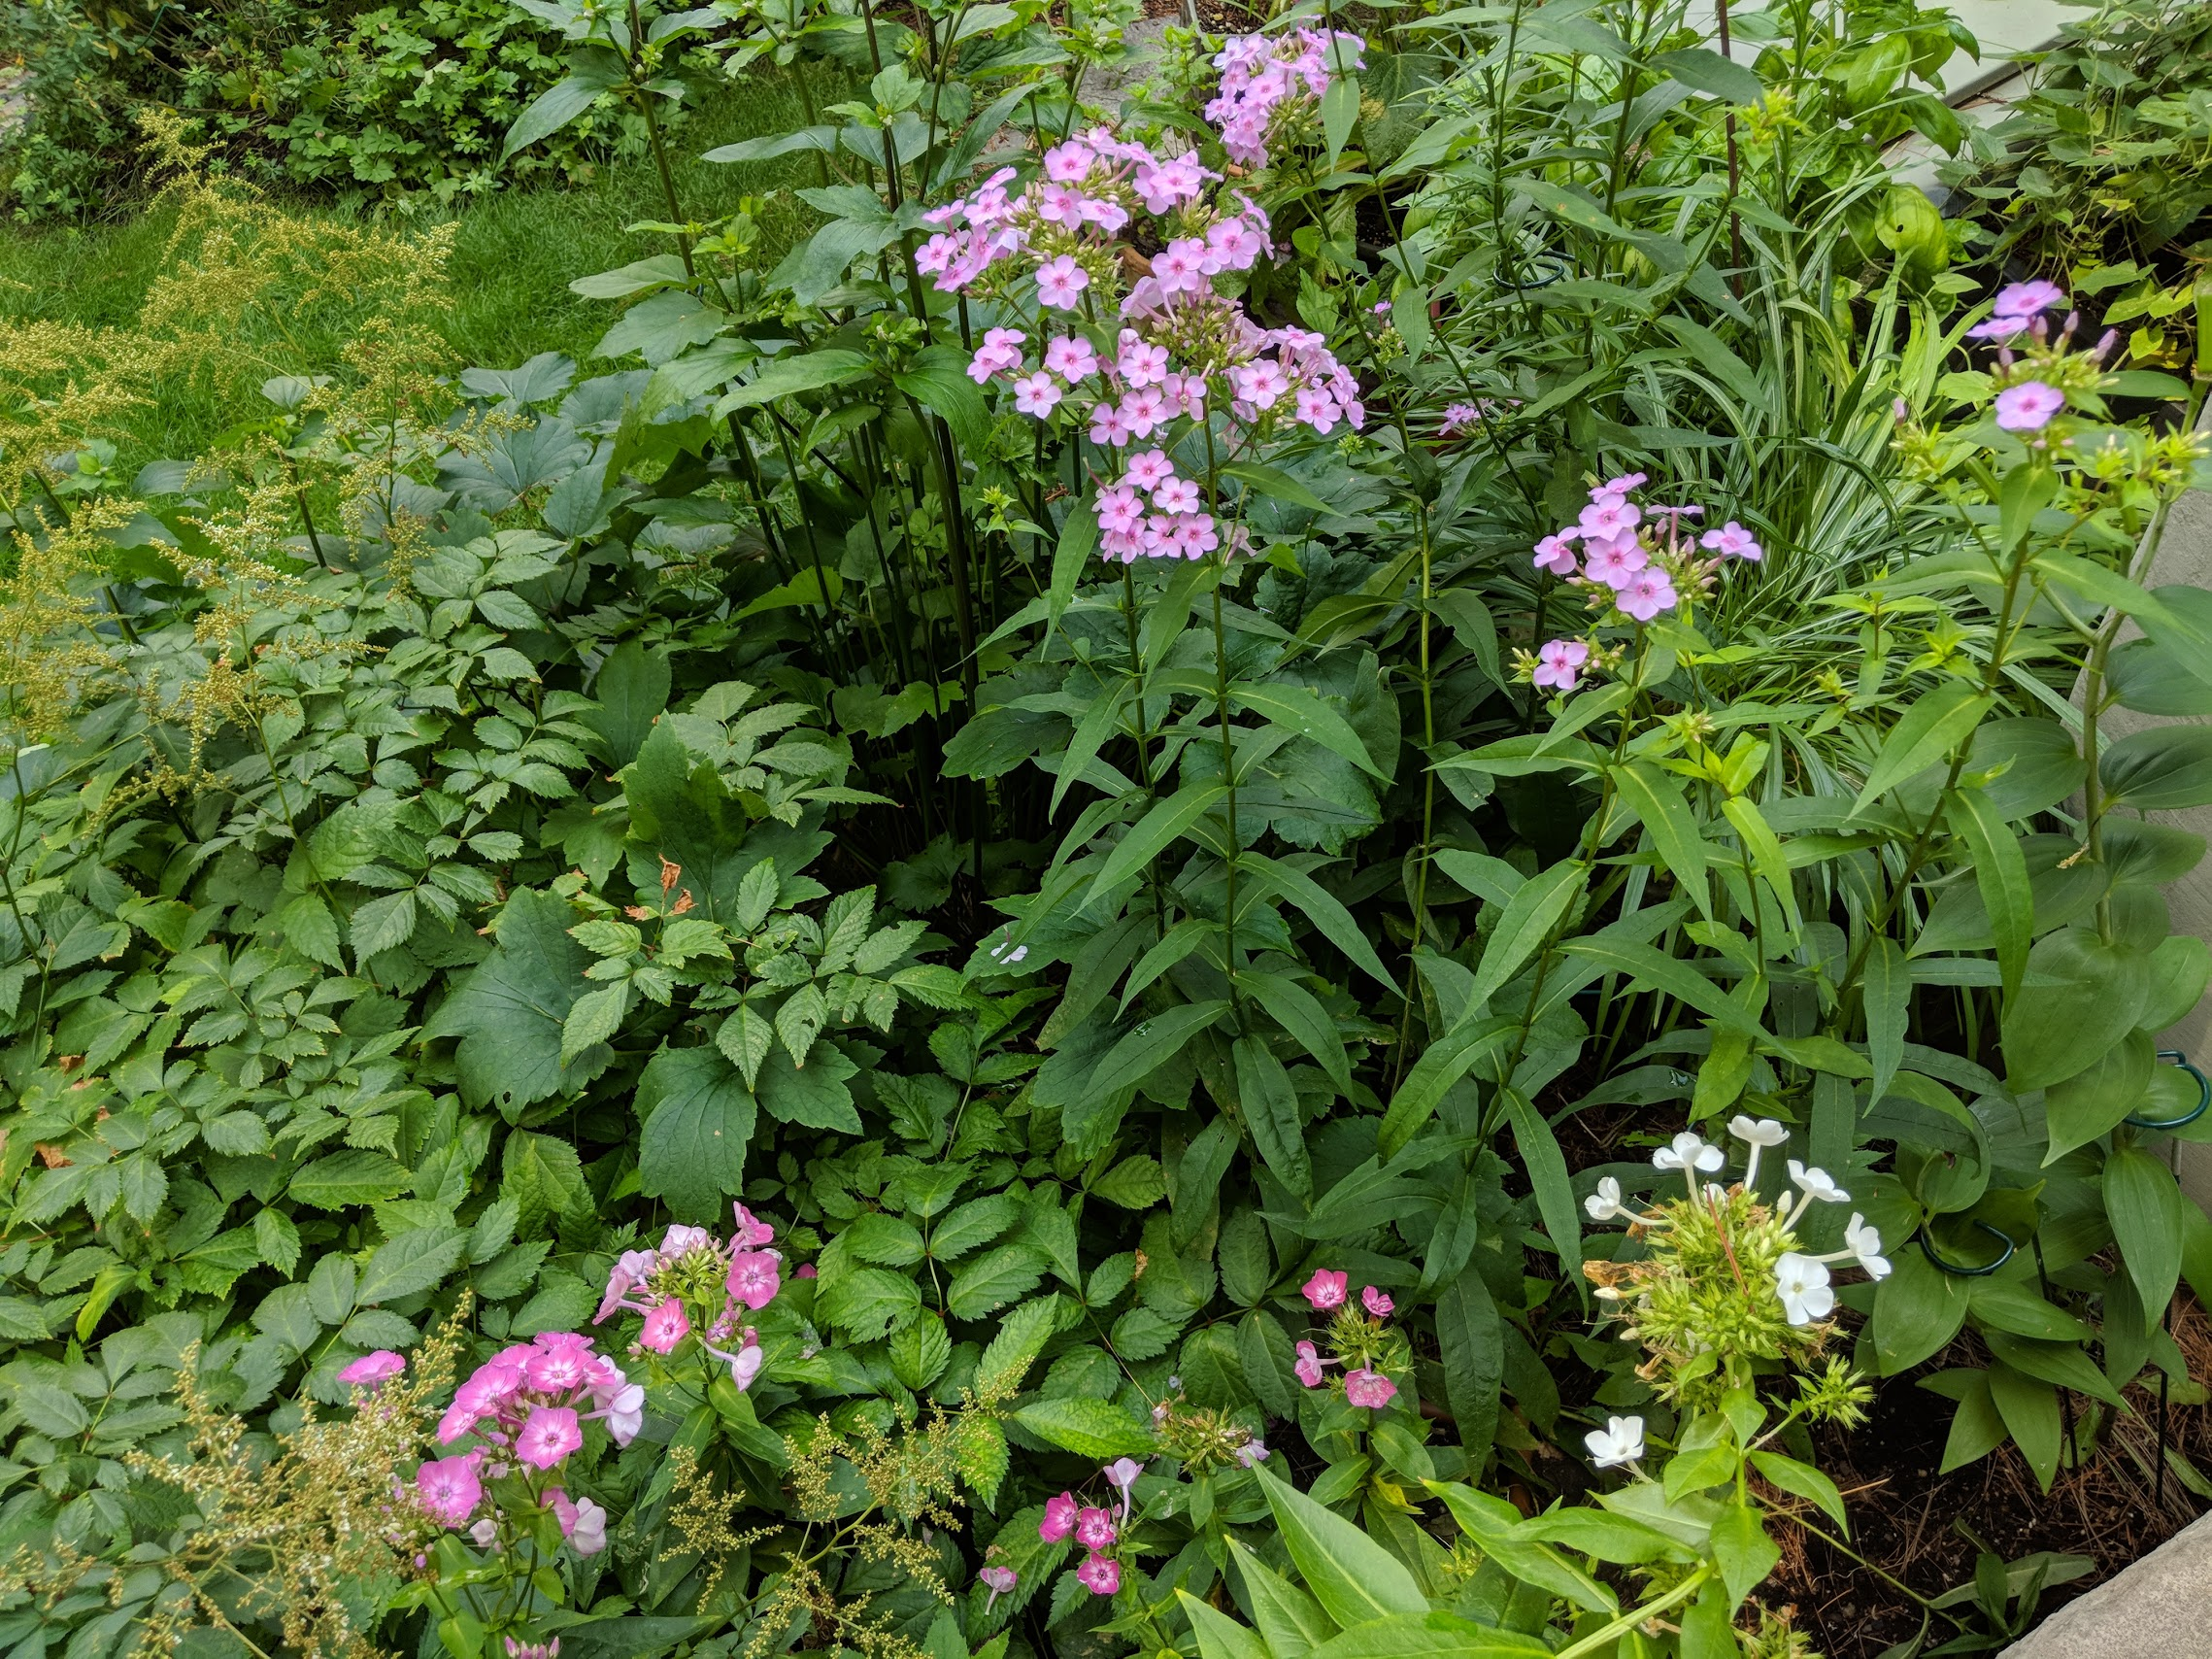 Phlox paniculata 'Speed Limit 45' (tallest) with 'Volcano Pink White Eye' (lower left) and 'David' (white)